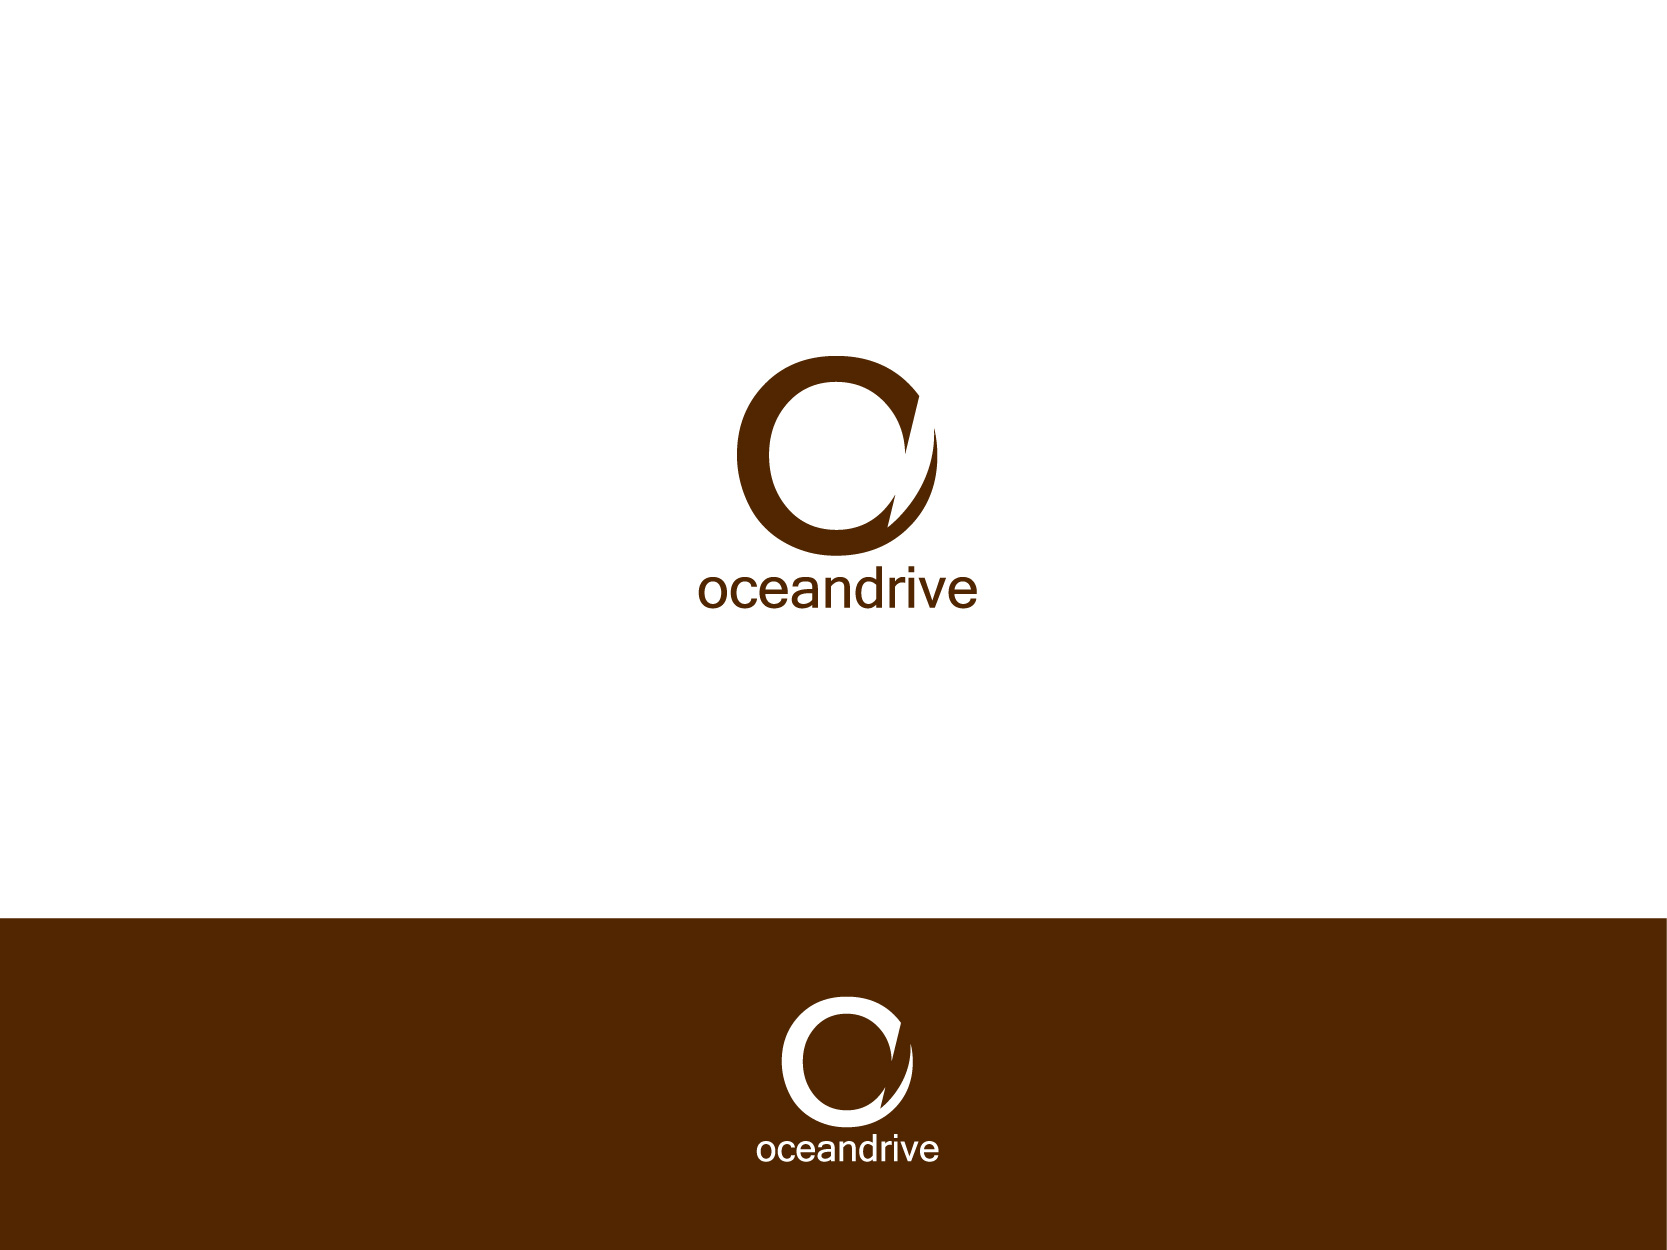 Logo Design by Osi Indra - Entry No. 17 in the Logo Design Contest Captivating Logo Design for Oceandrive Leather.